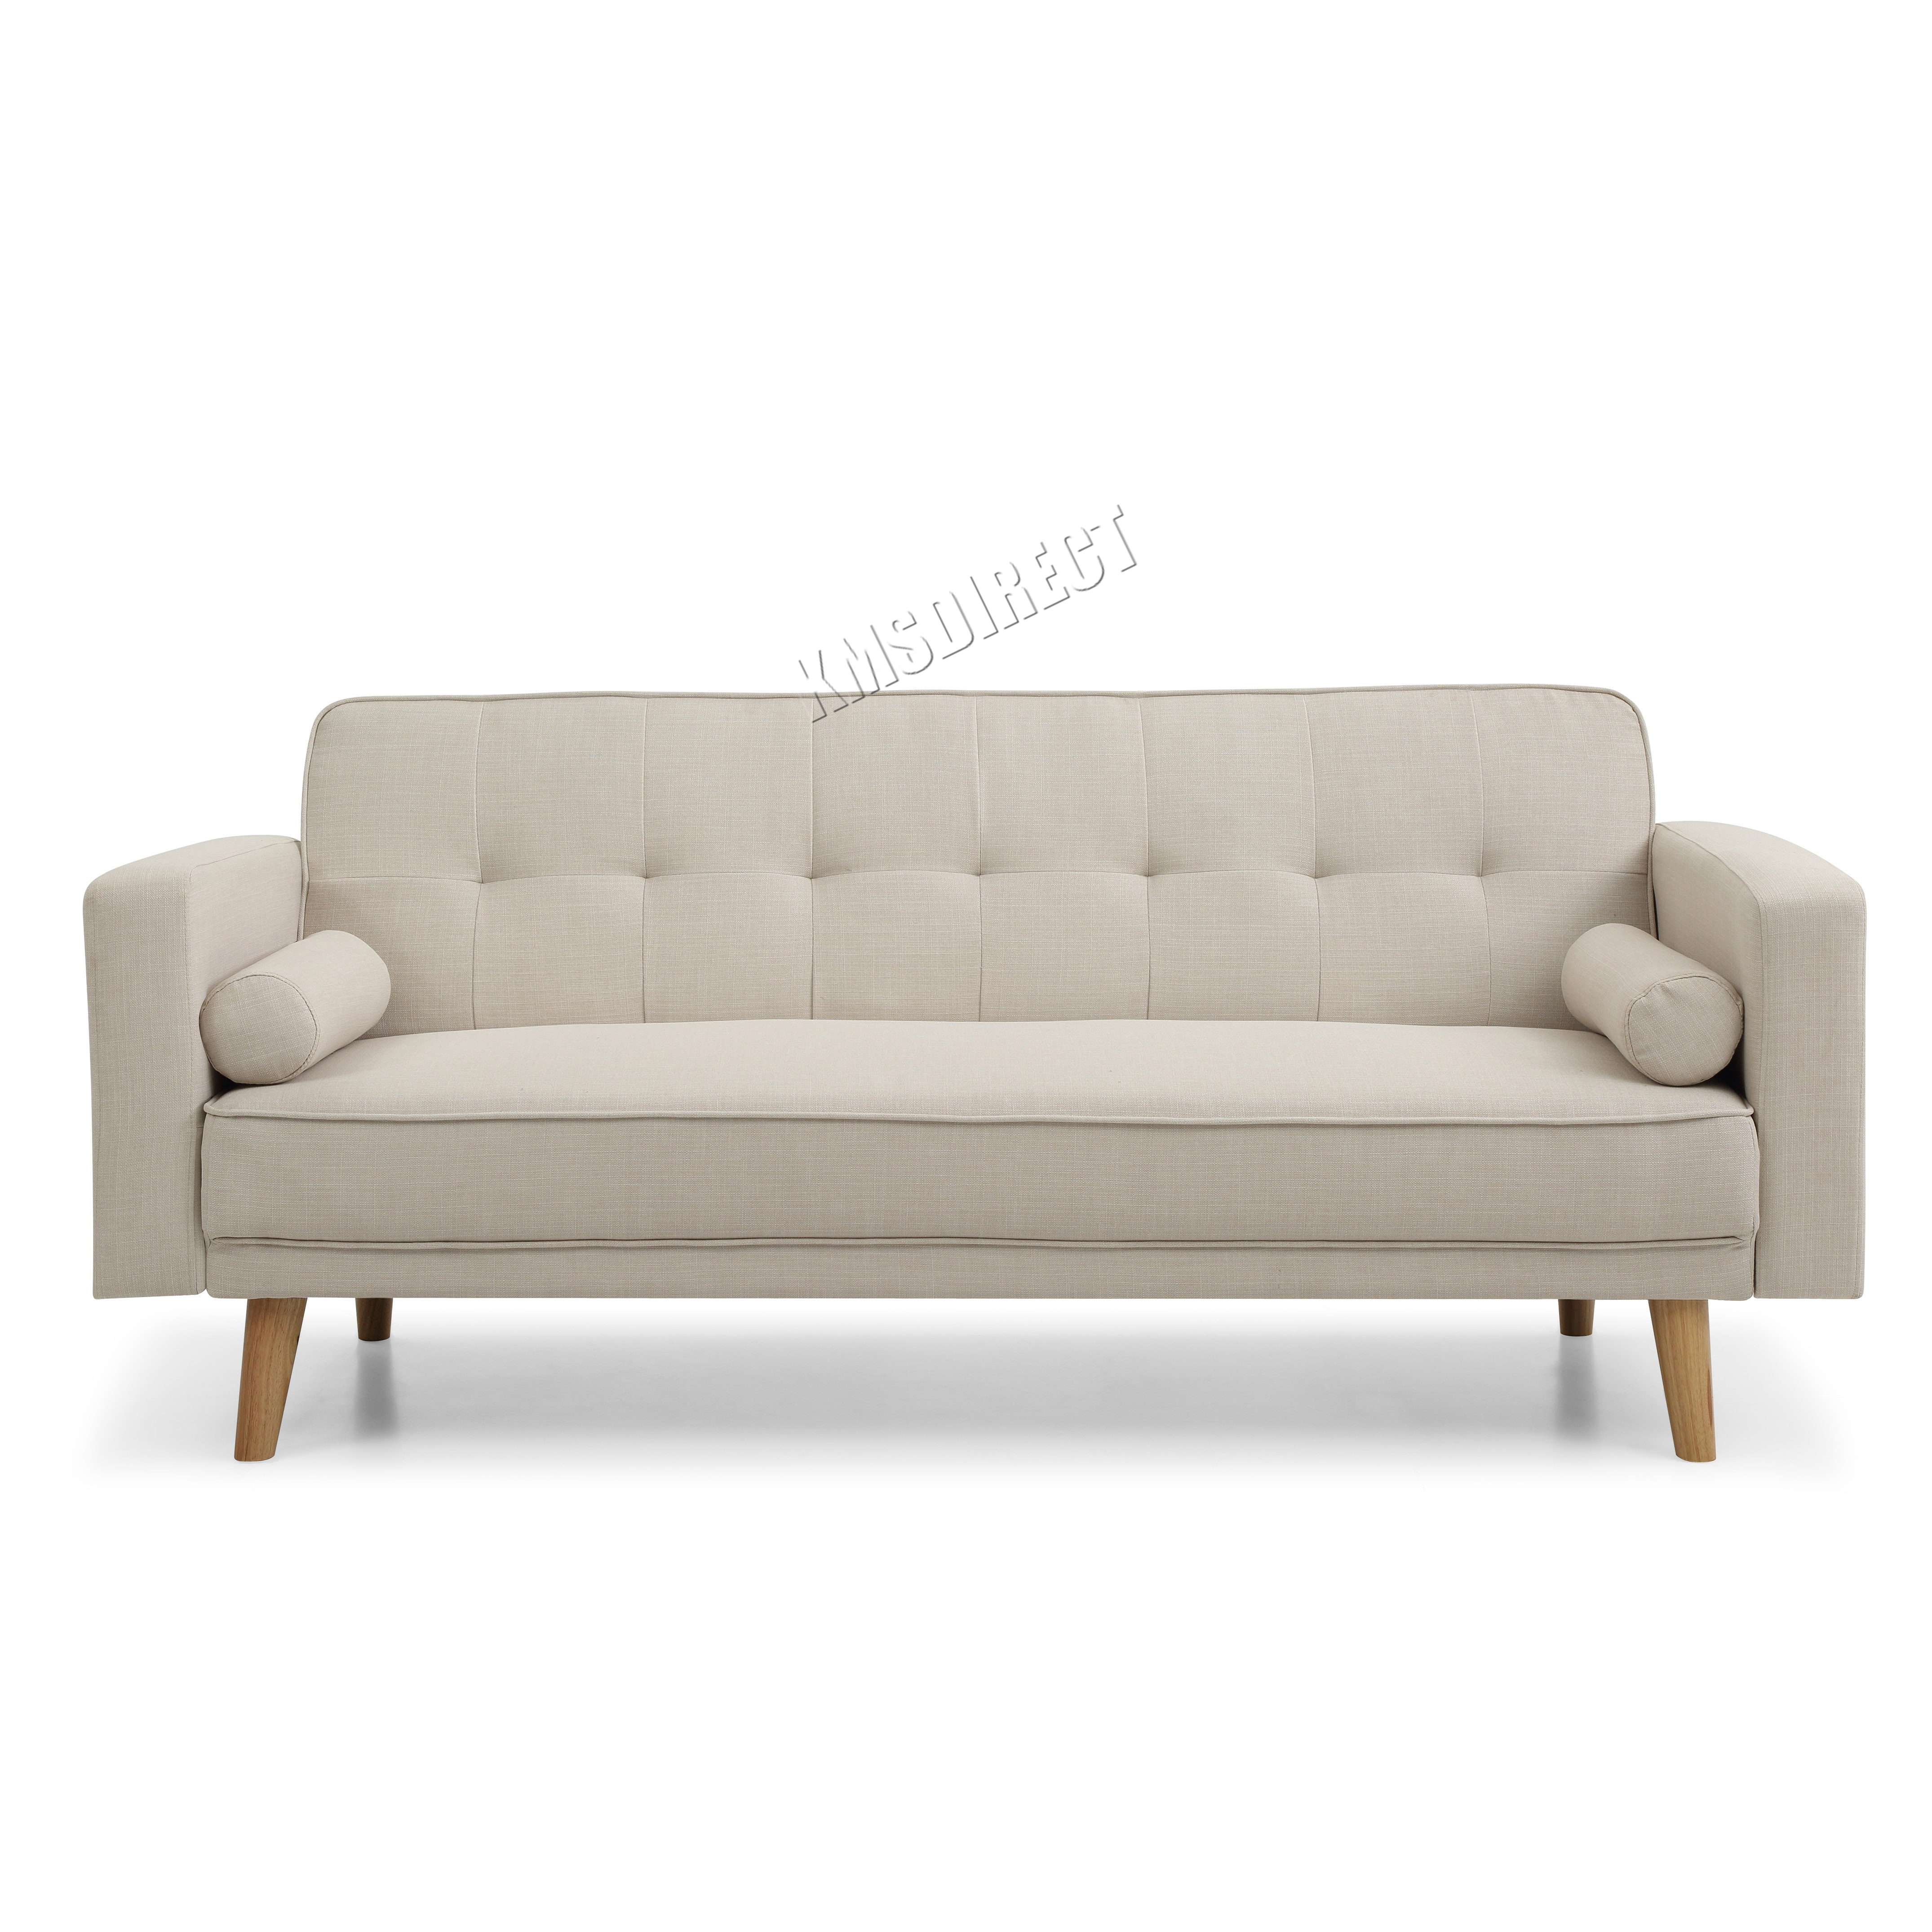 Westwood Fabric Sofa Bed 3 Seater Couch Luxury